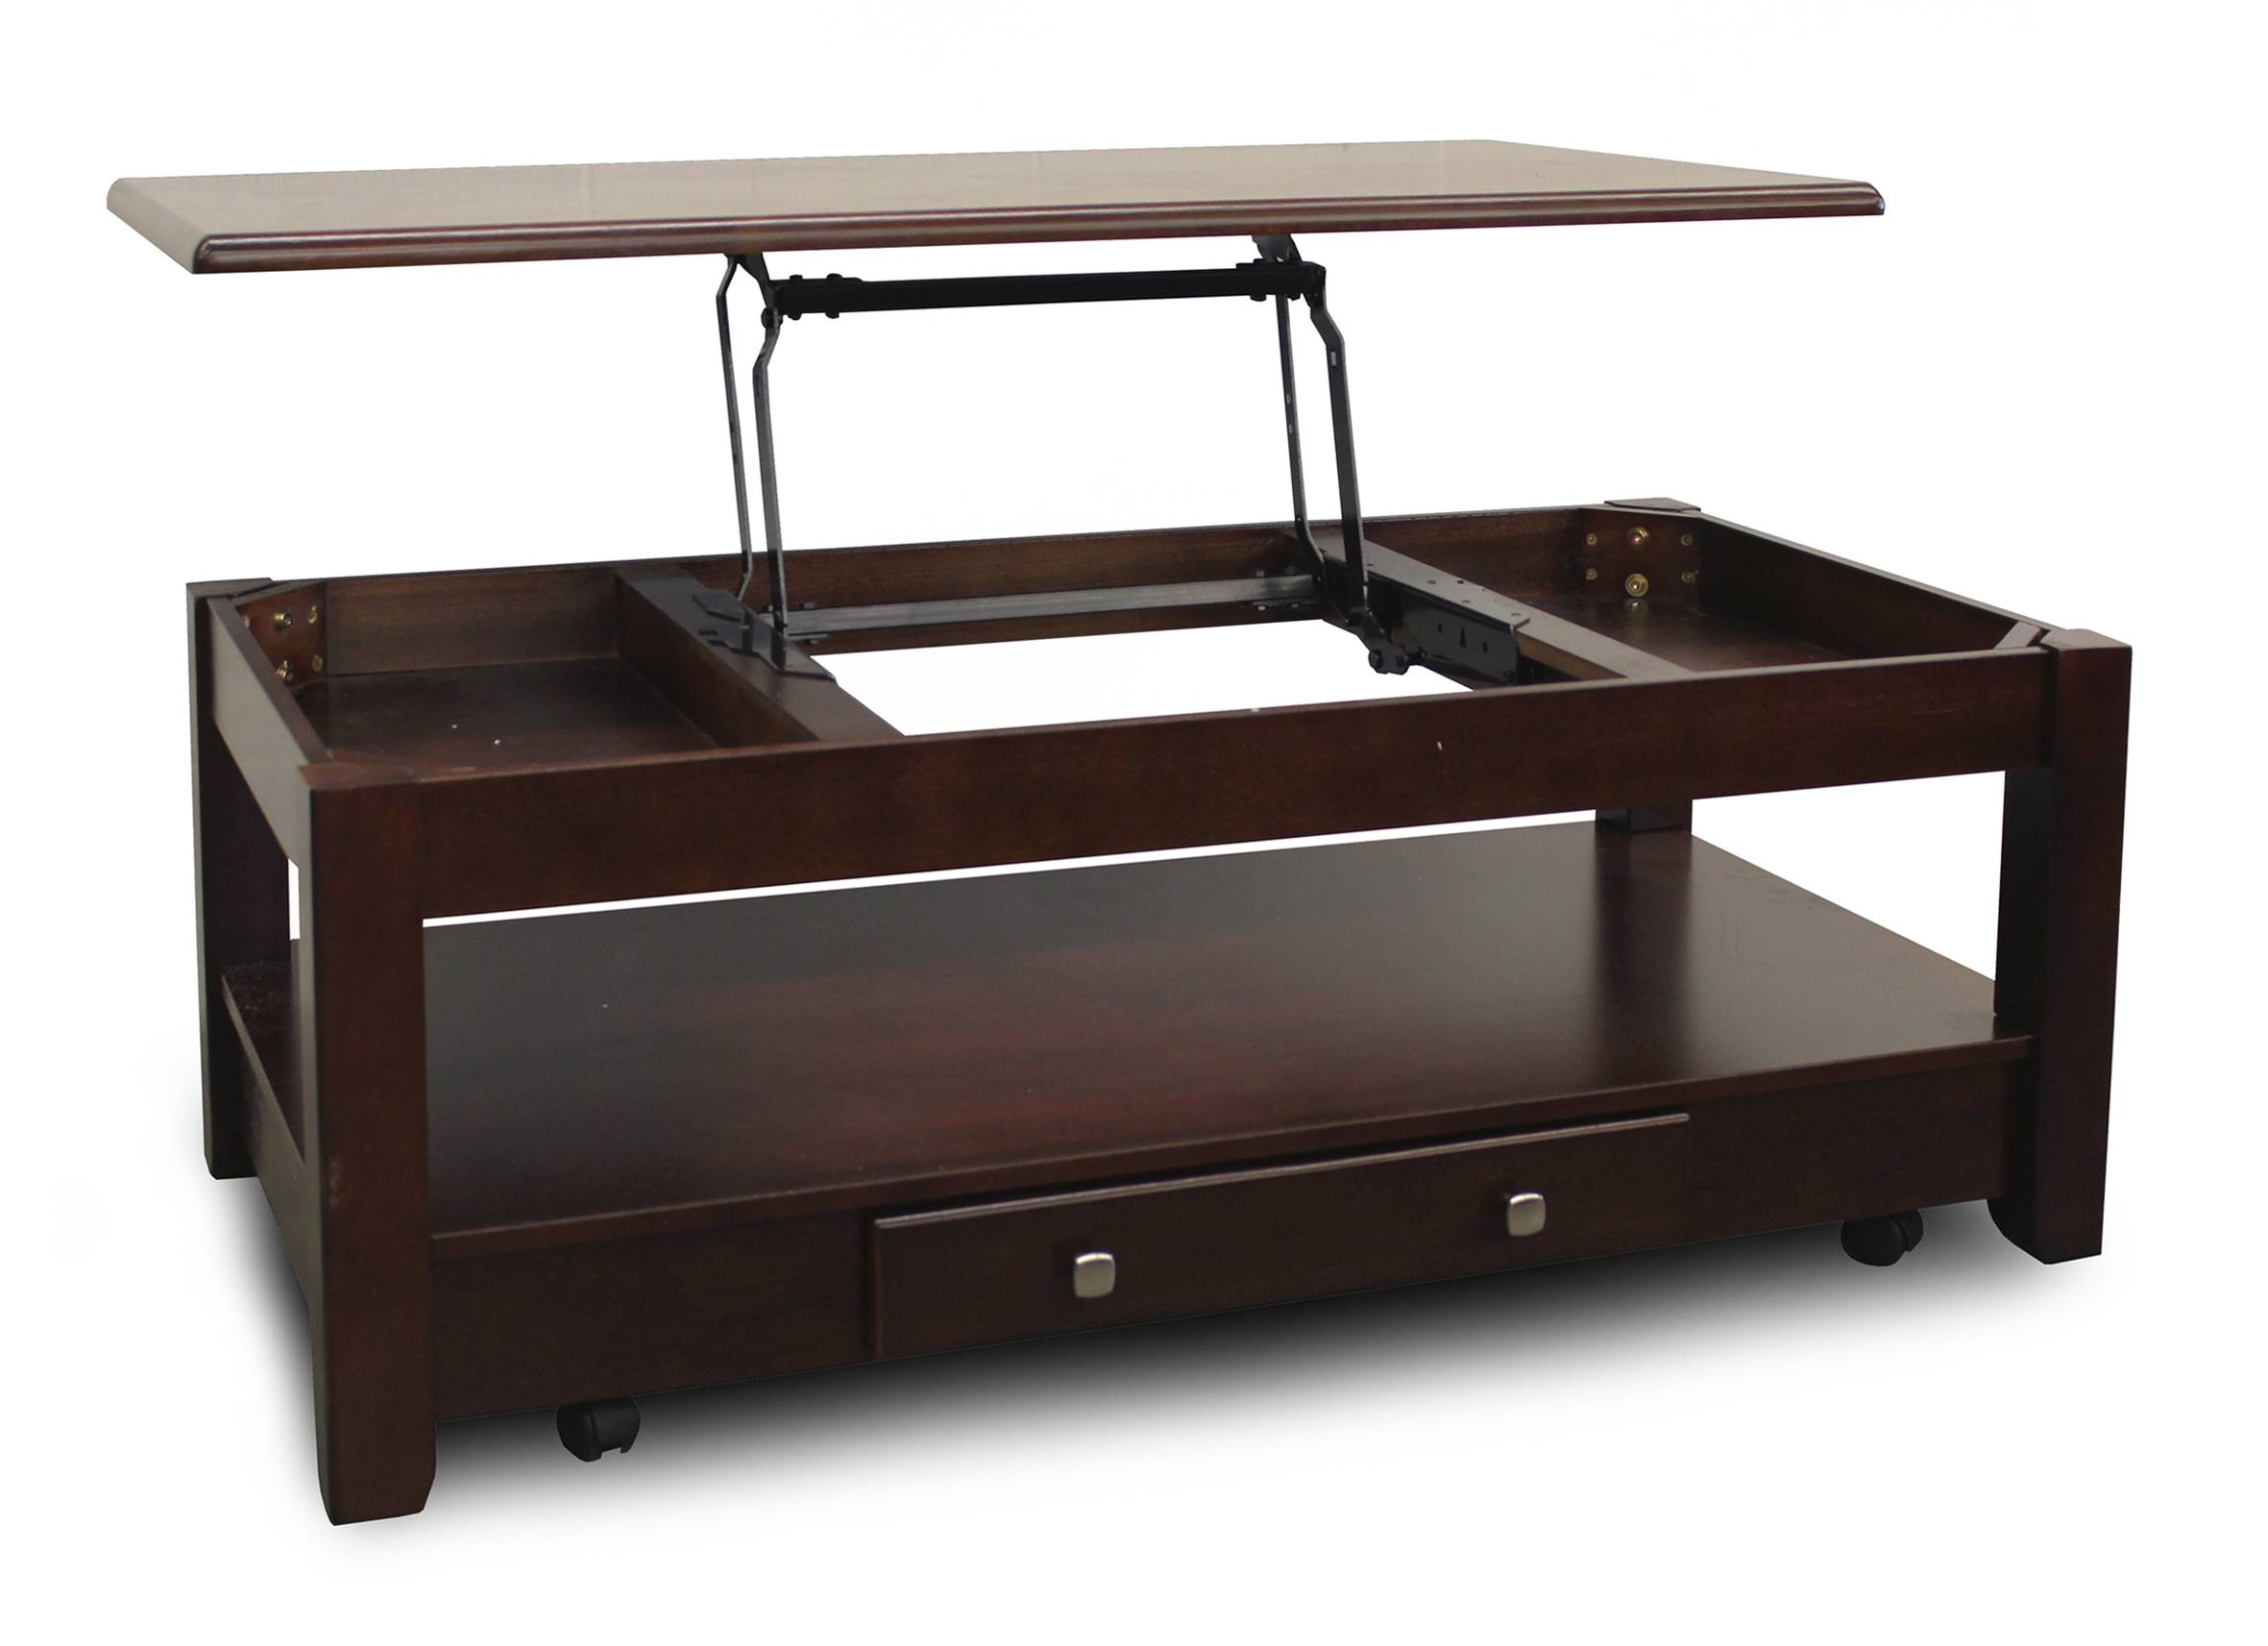 Table. Espresso Lift Top Coffee Table - Dubsquad for Lift Top Coffee Tables With Storage (Image 27 of 30)